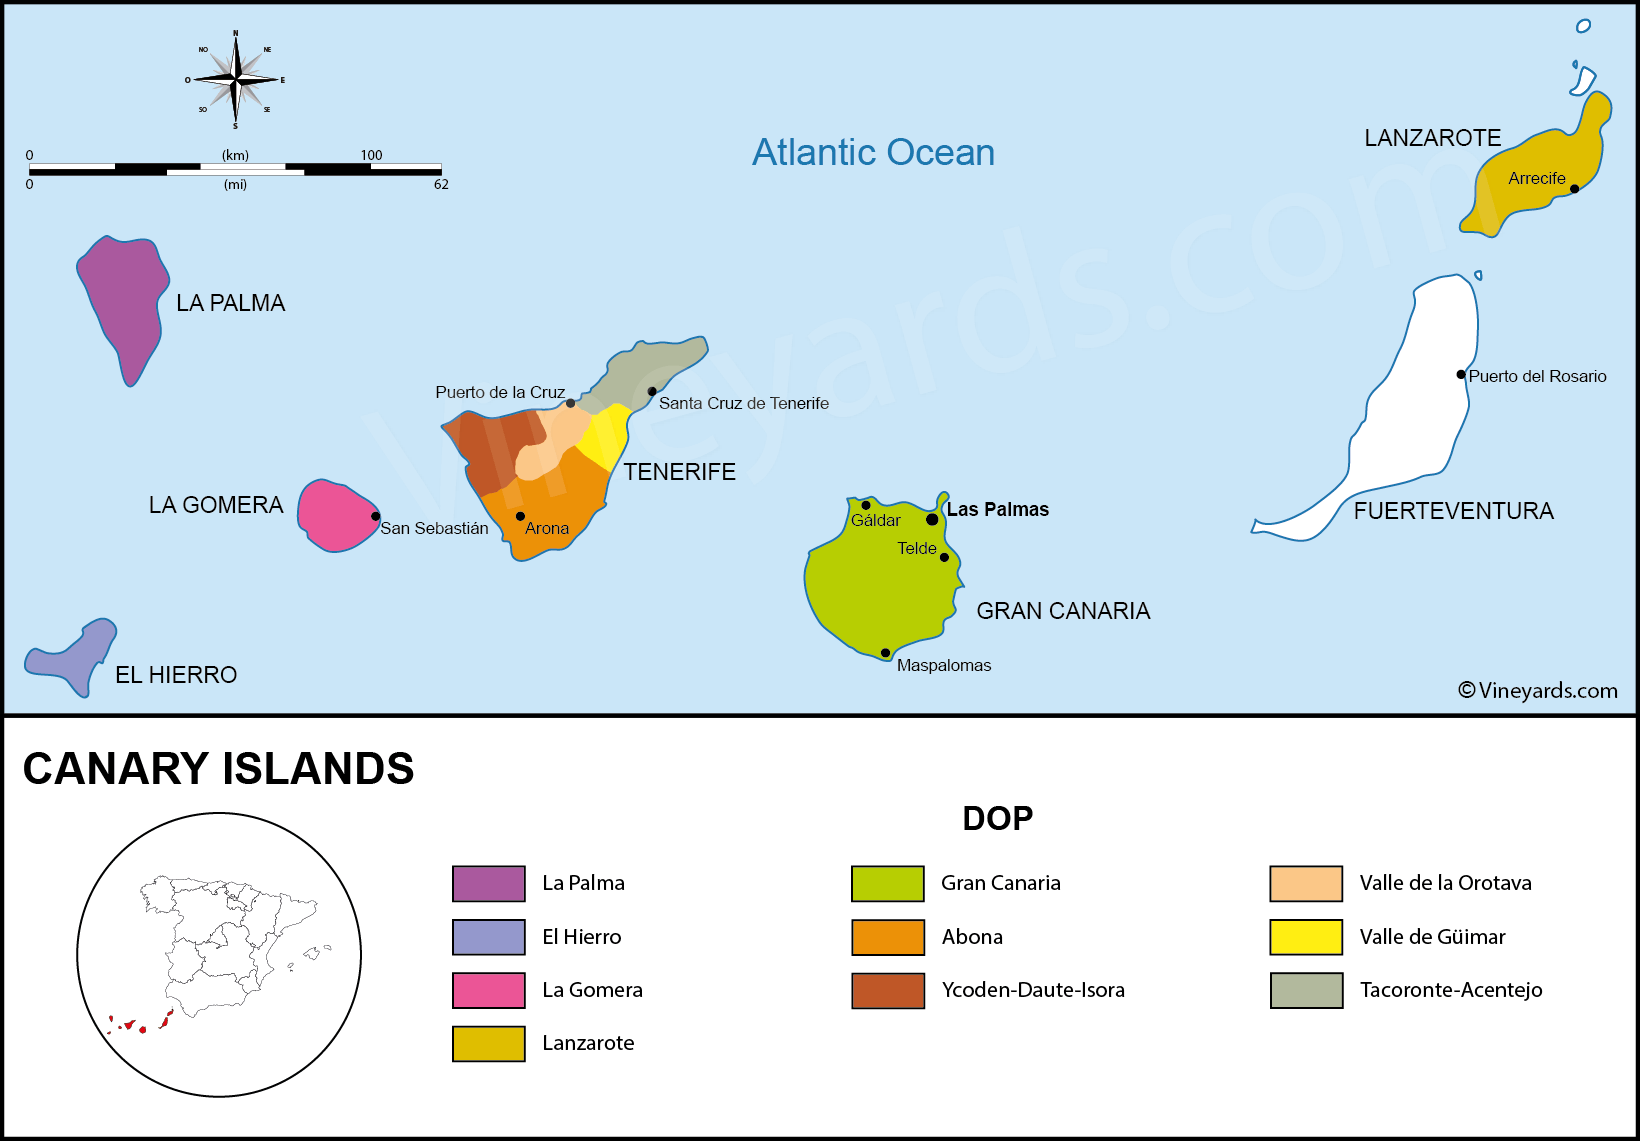 Wine Regions in Canary Islands